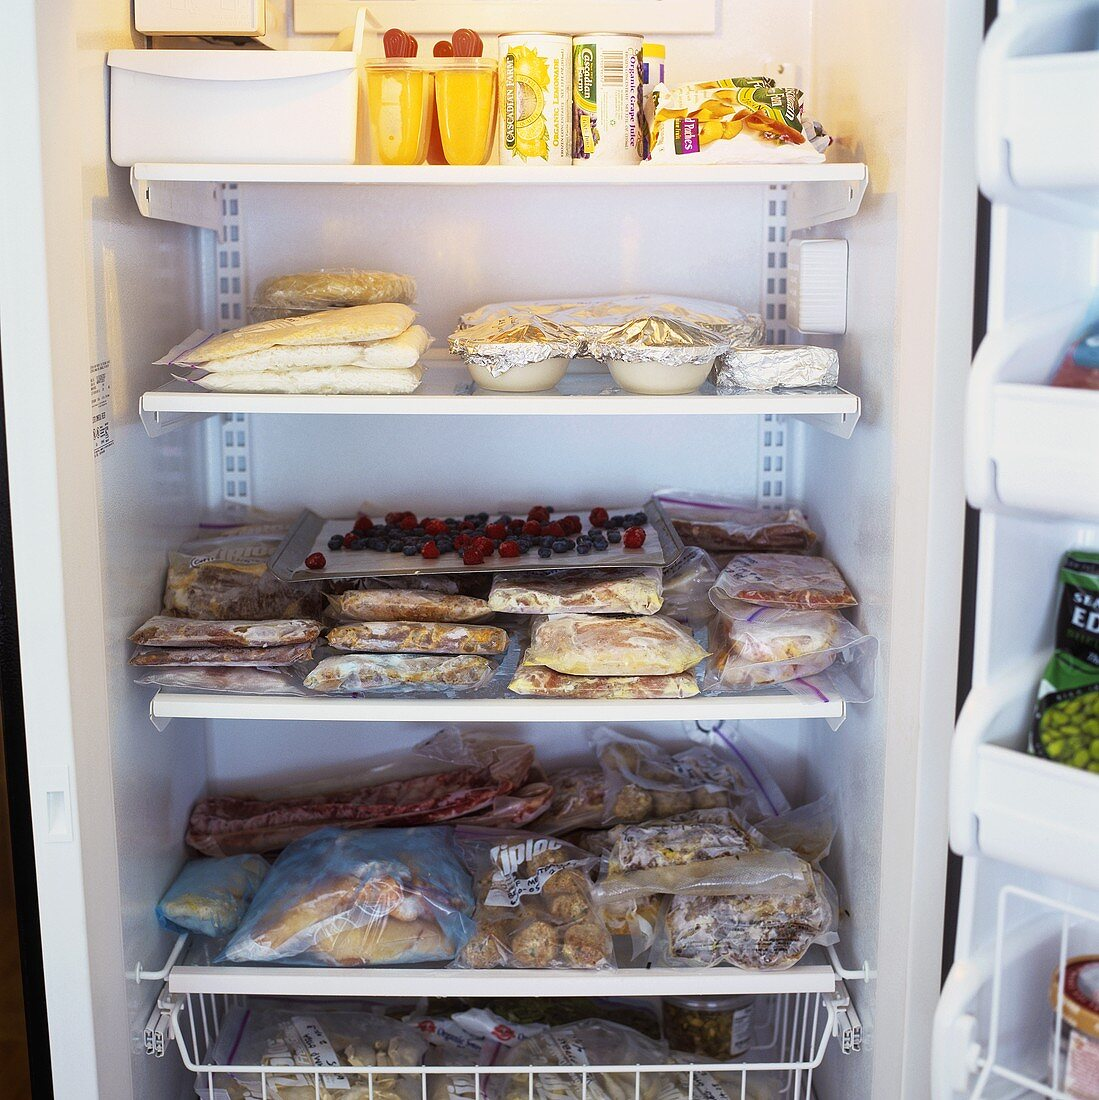 Open freezer full of food